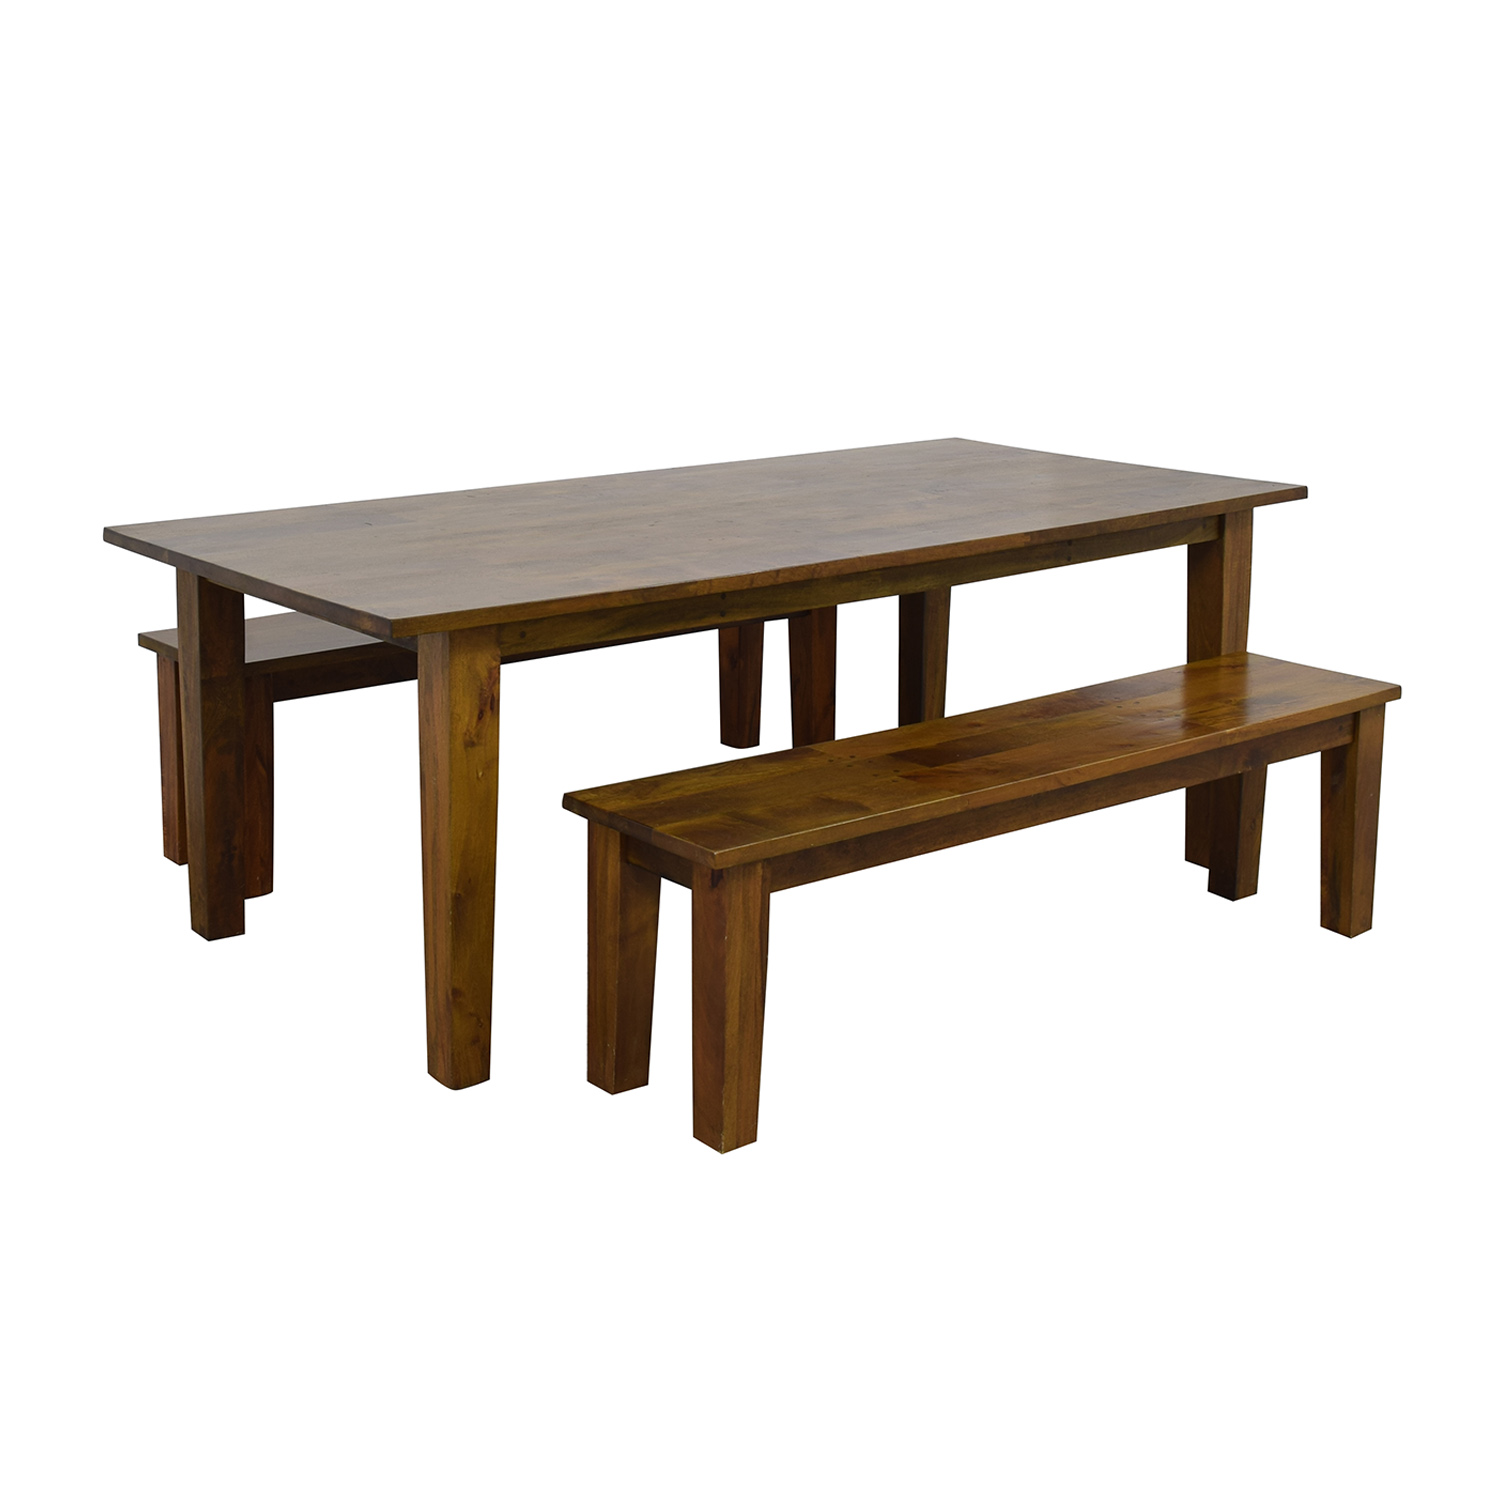 Crate & Barrel Crate & Barrel Wood Table with Two Benches second hand